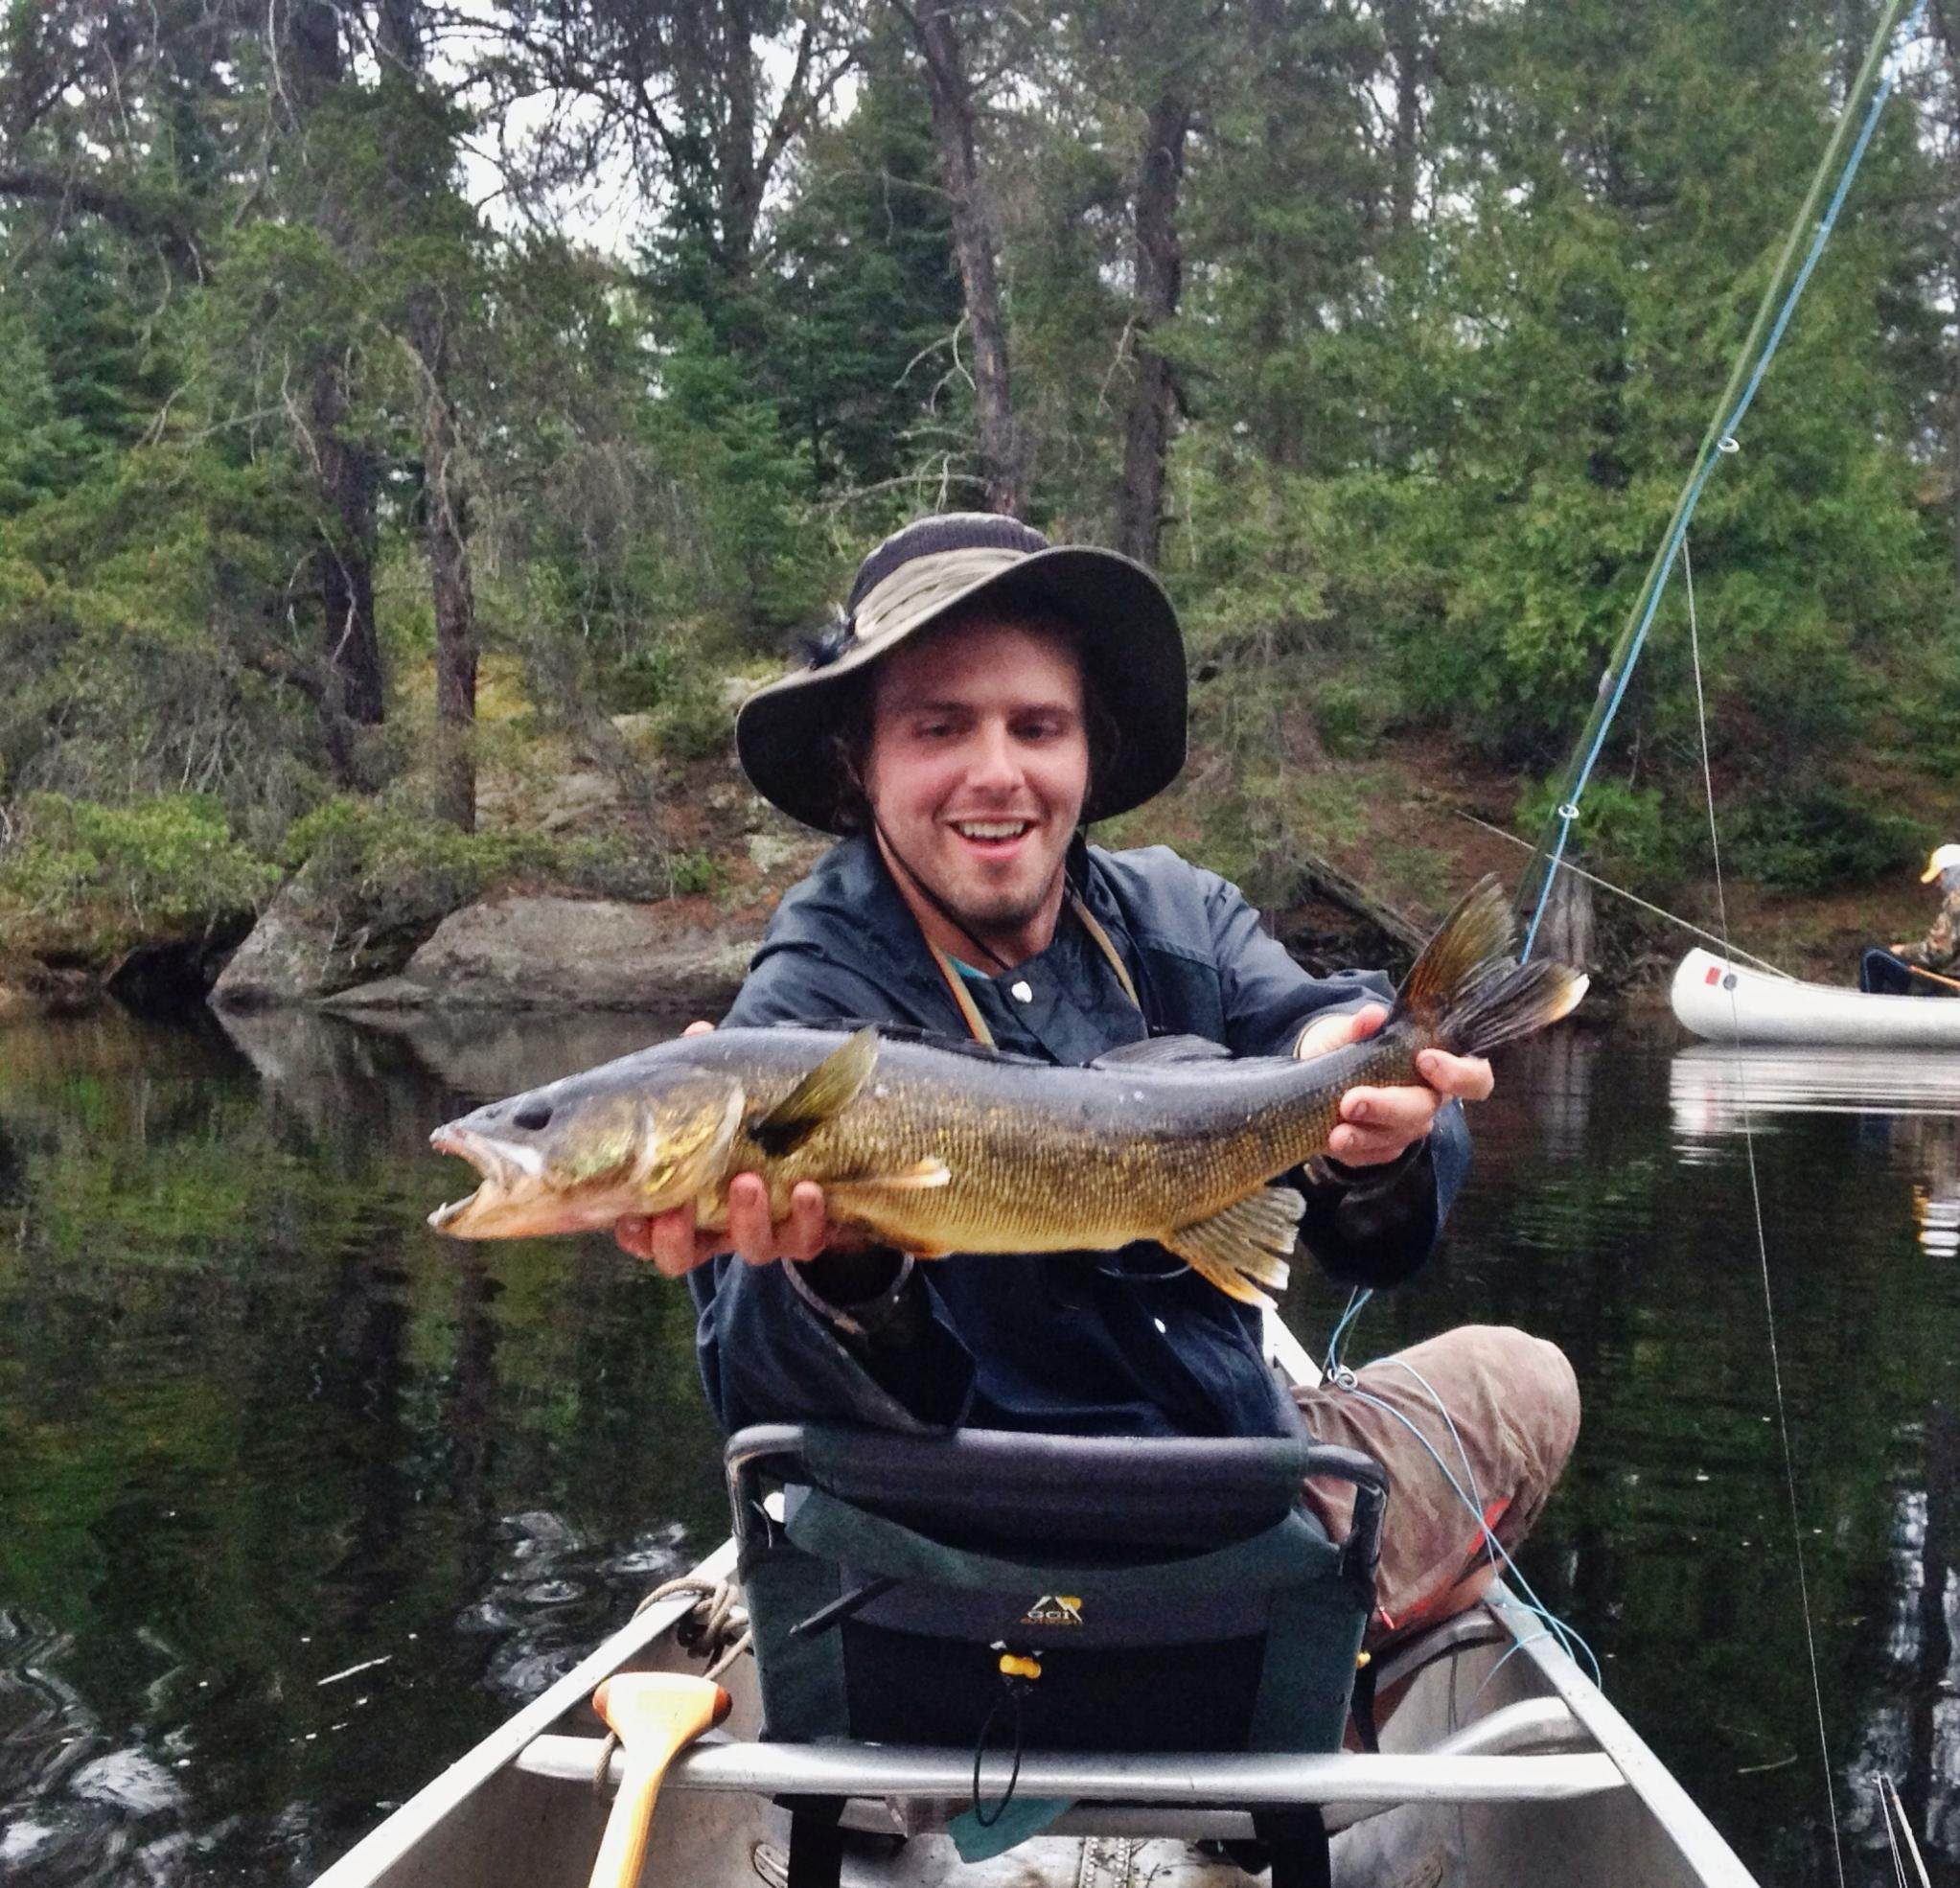 Bwca fly fishing for pike or smallies boundary waters for Pike fly fishing